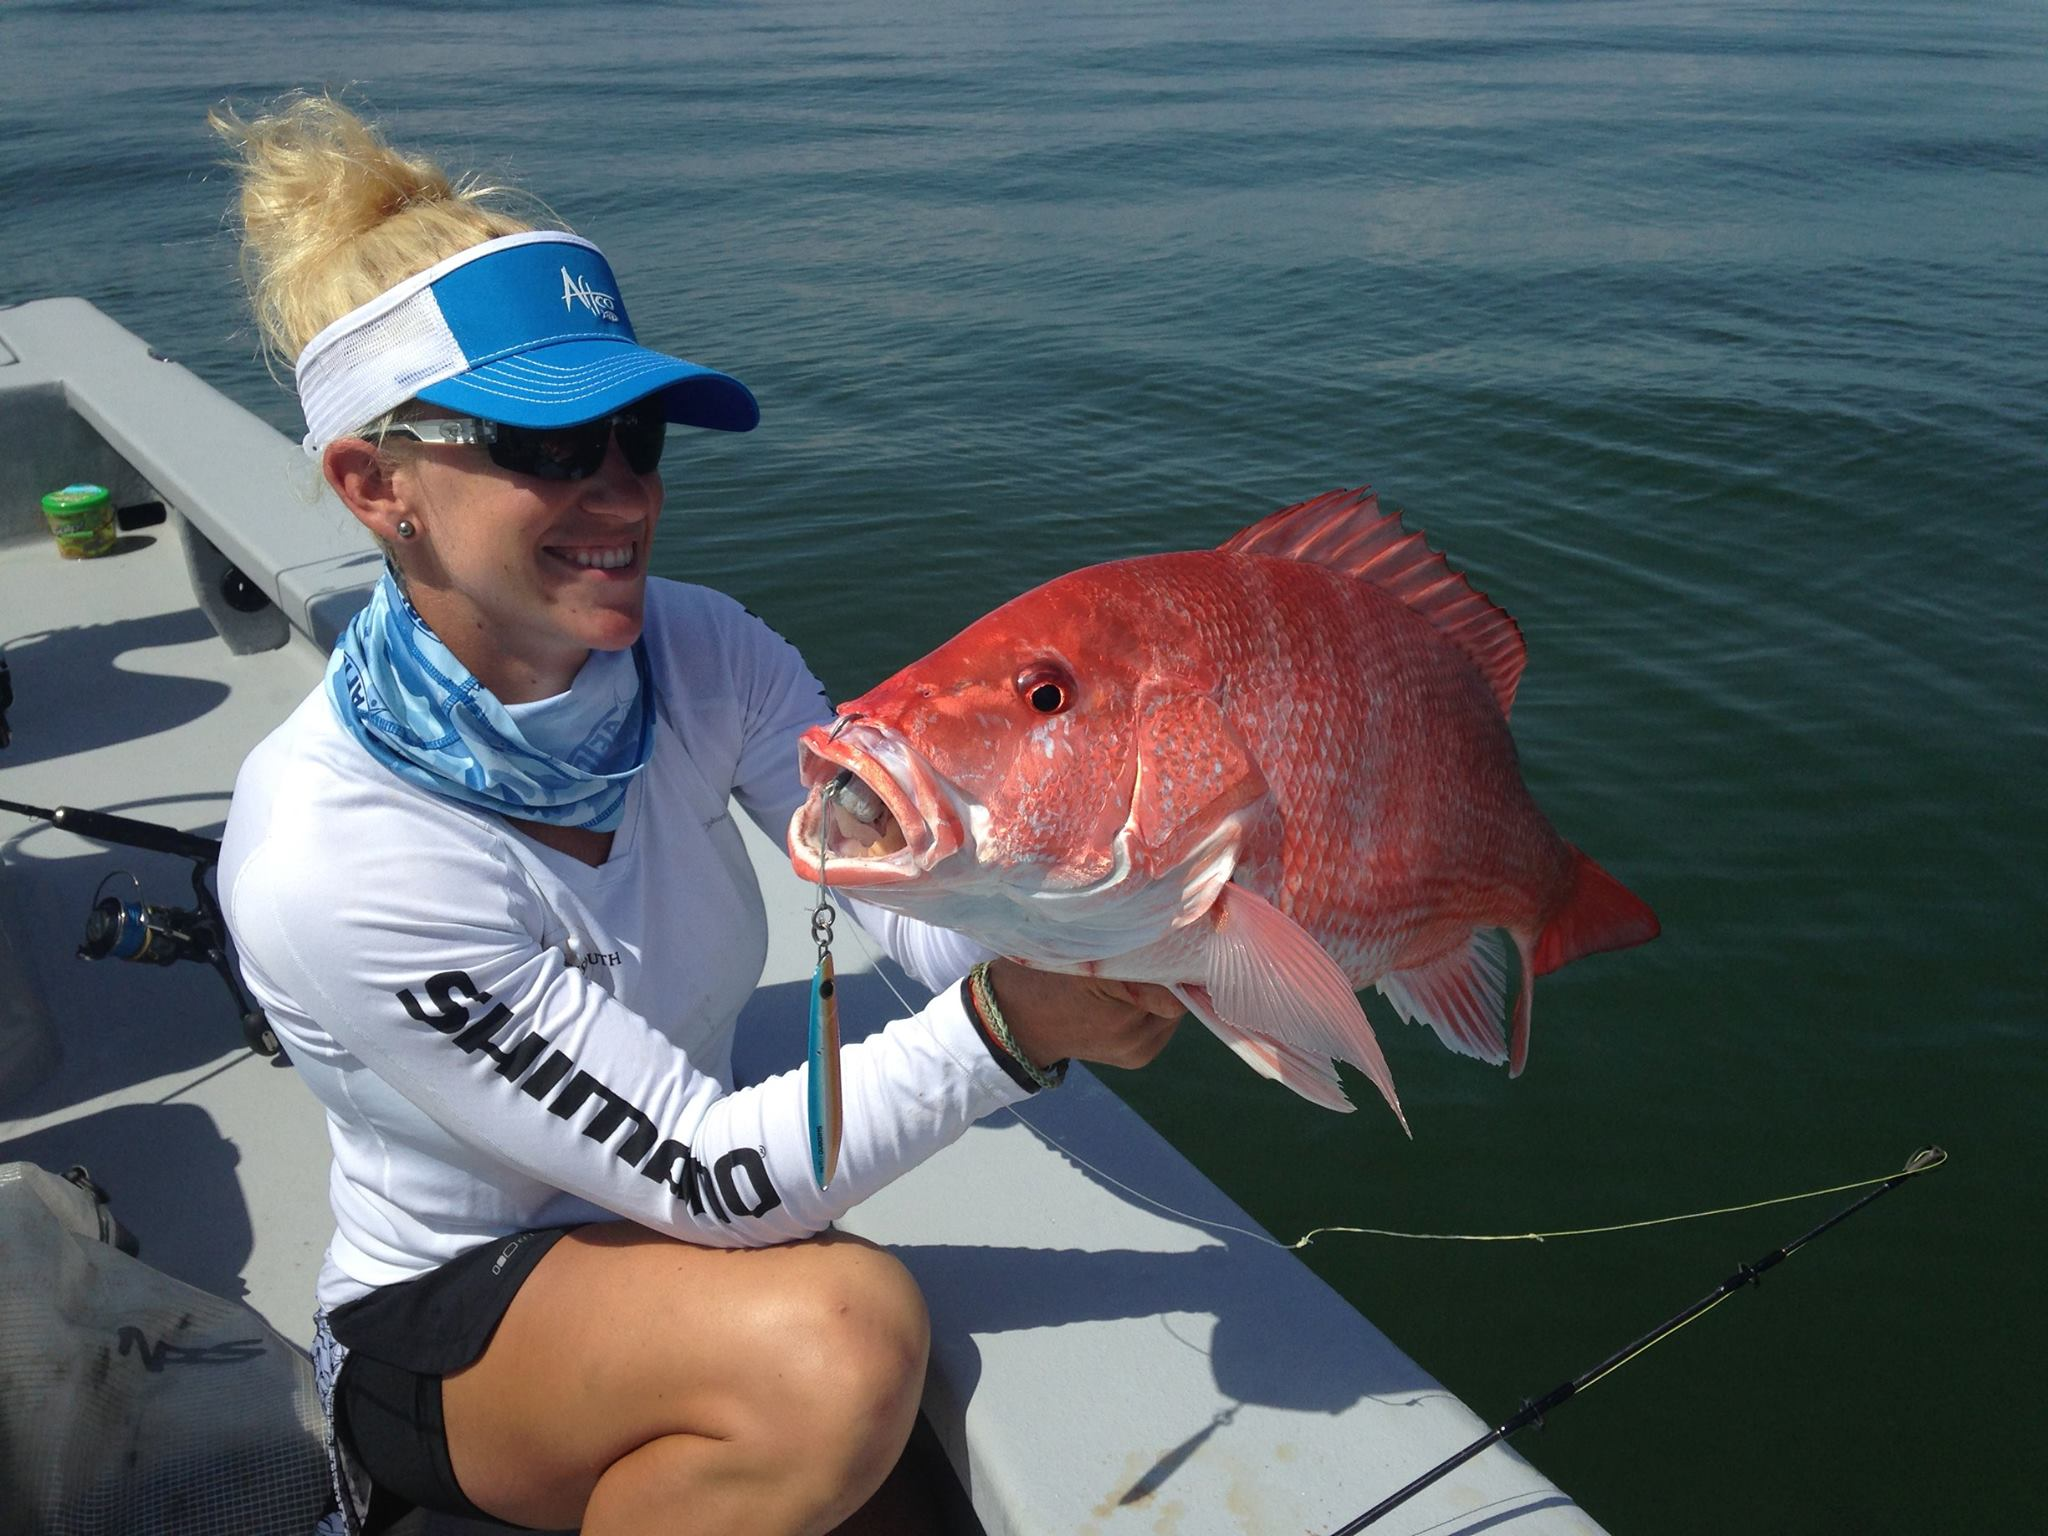 Female Angler with Red Snapper